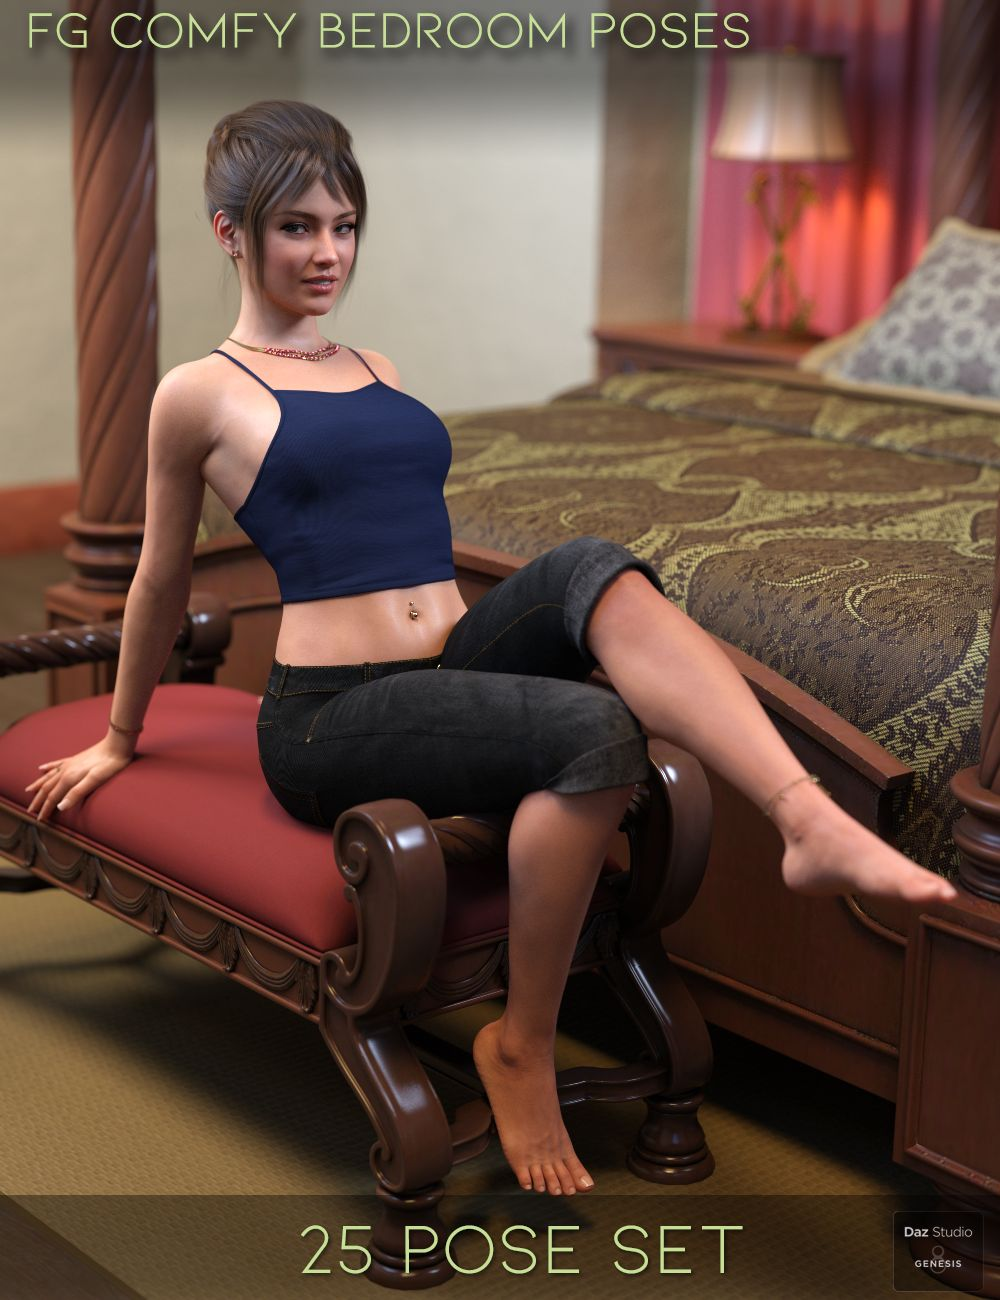 FG Comfy Bedroom Poses for Genesis 8 by: Paper TigerIronman, 3D Models by Daz 3D